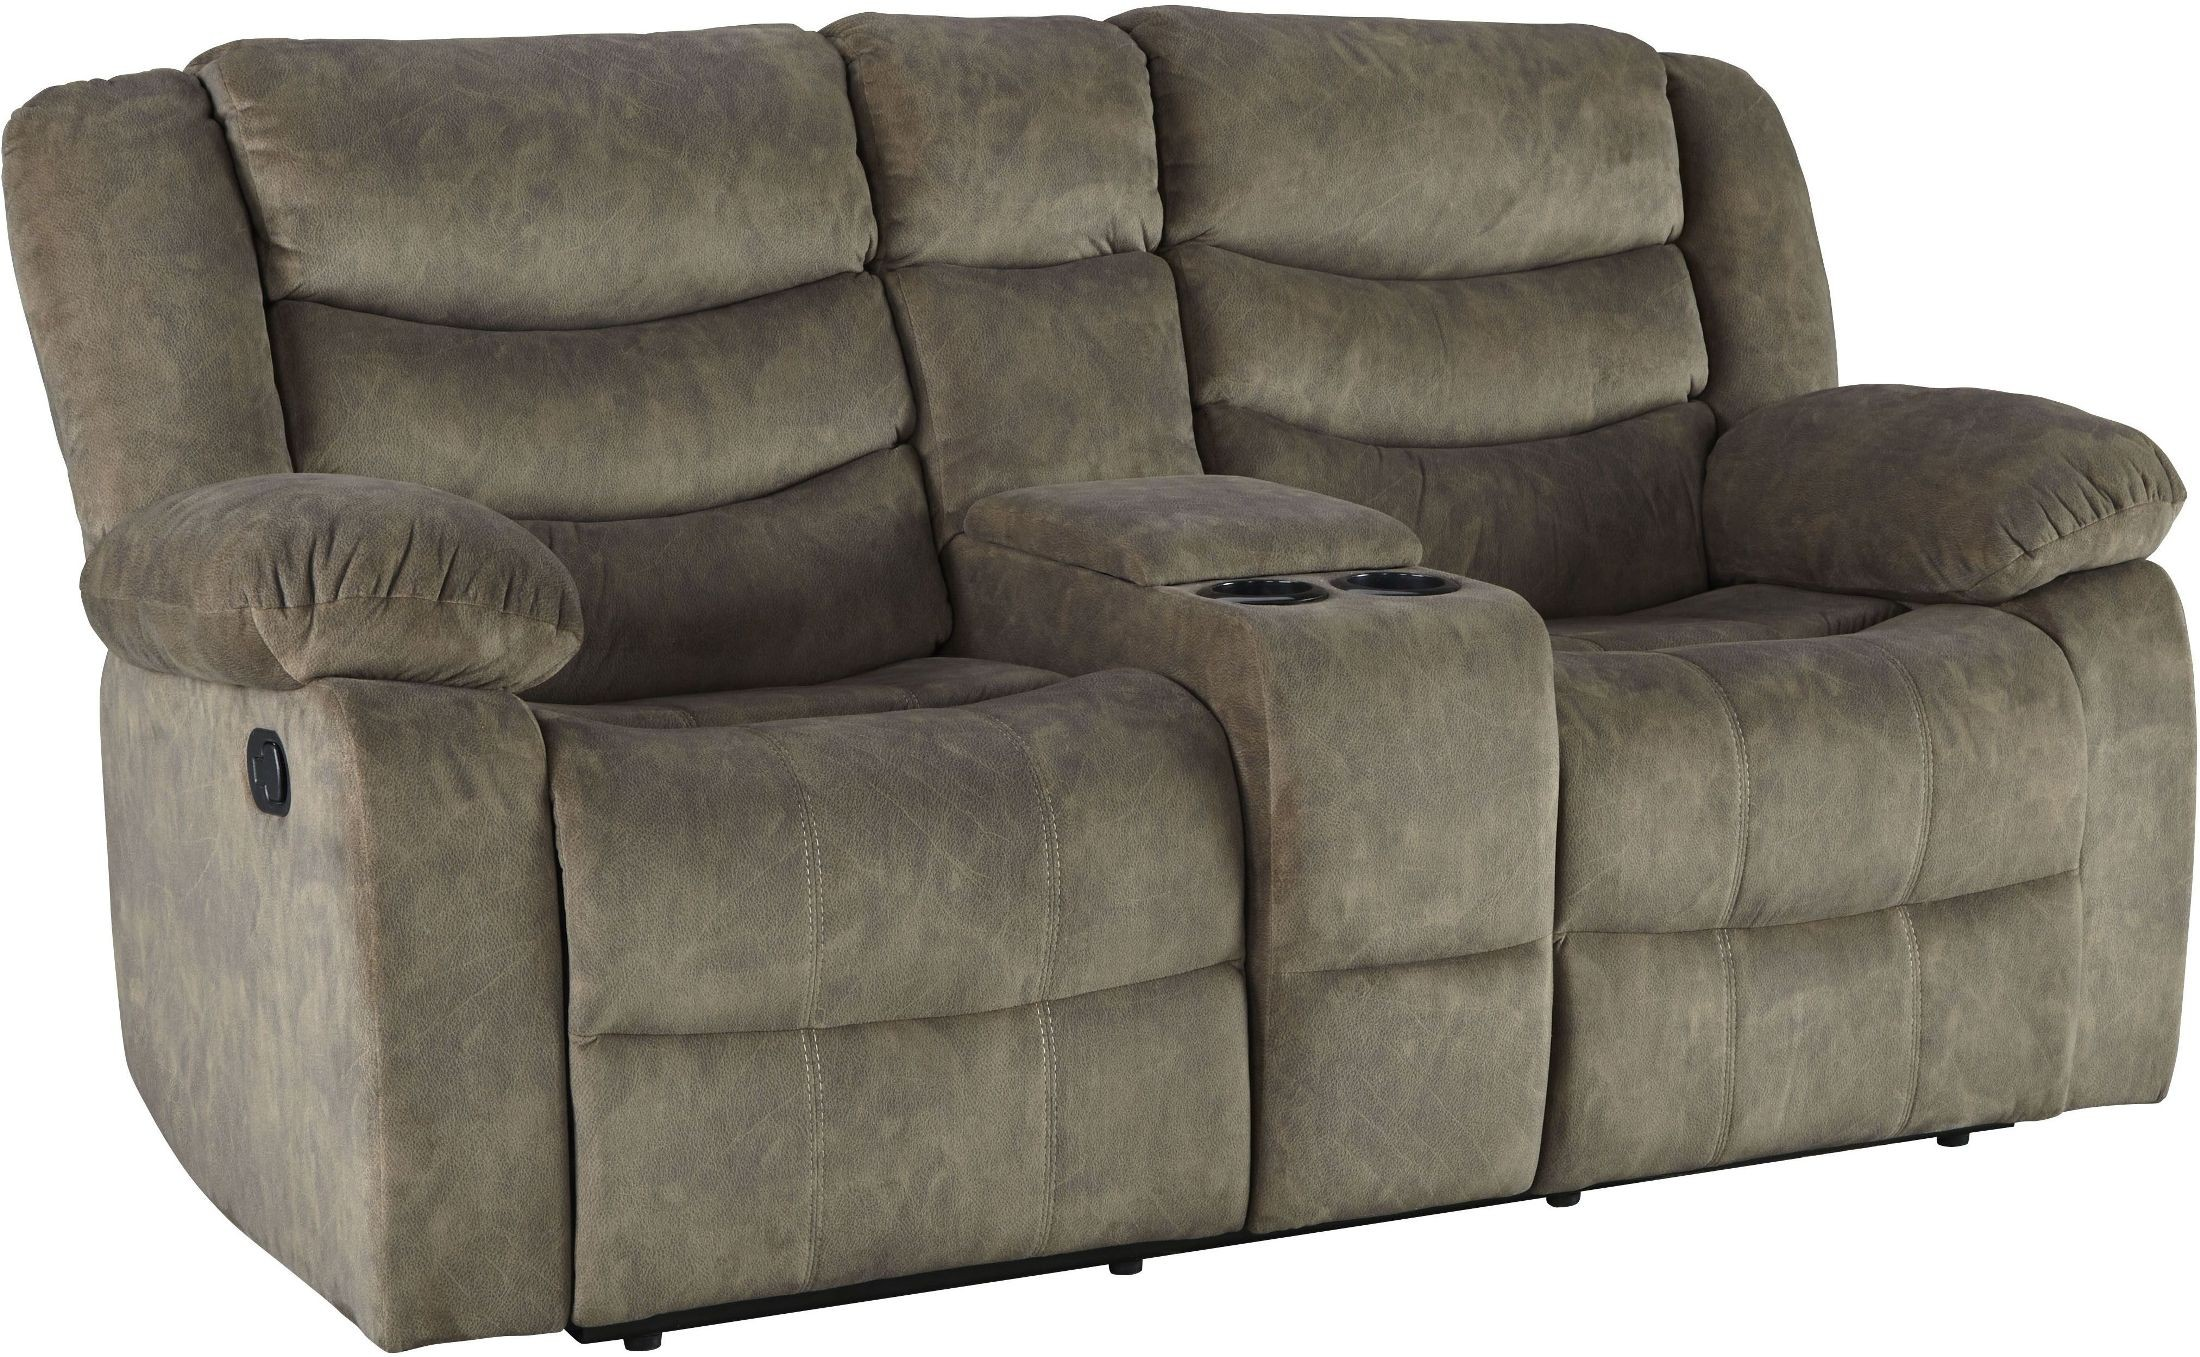 Ridgecrest Tan Reclining Loveseat From Standard Furniture Coleman Furniture